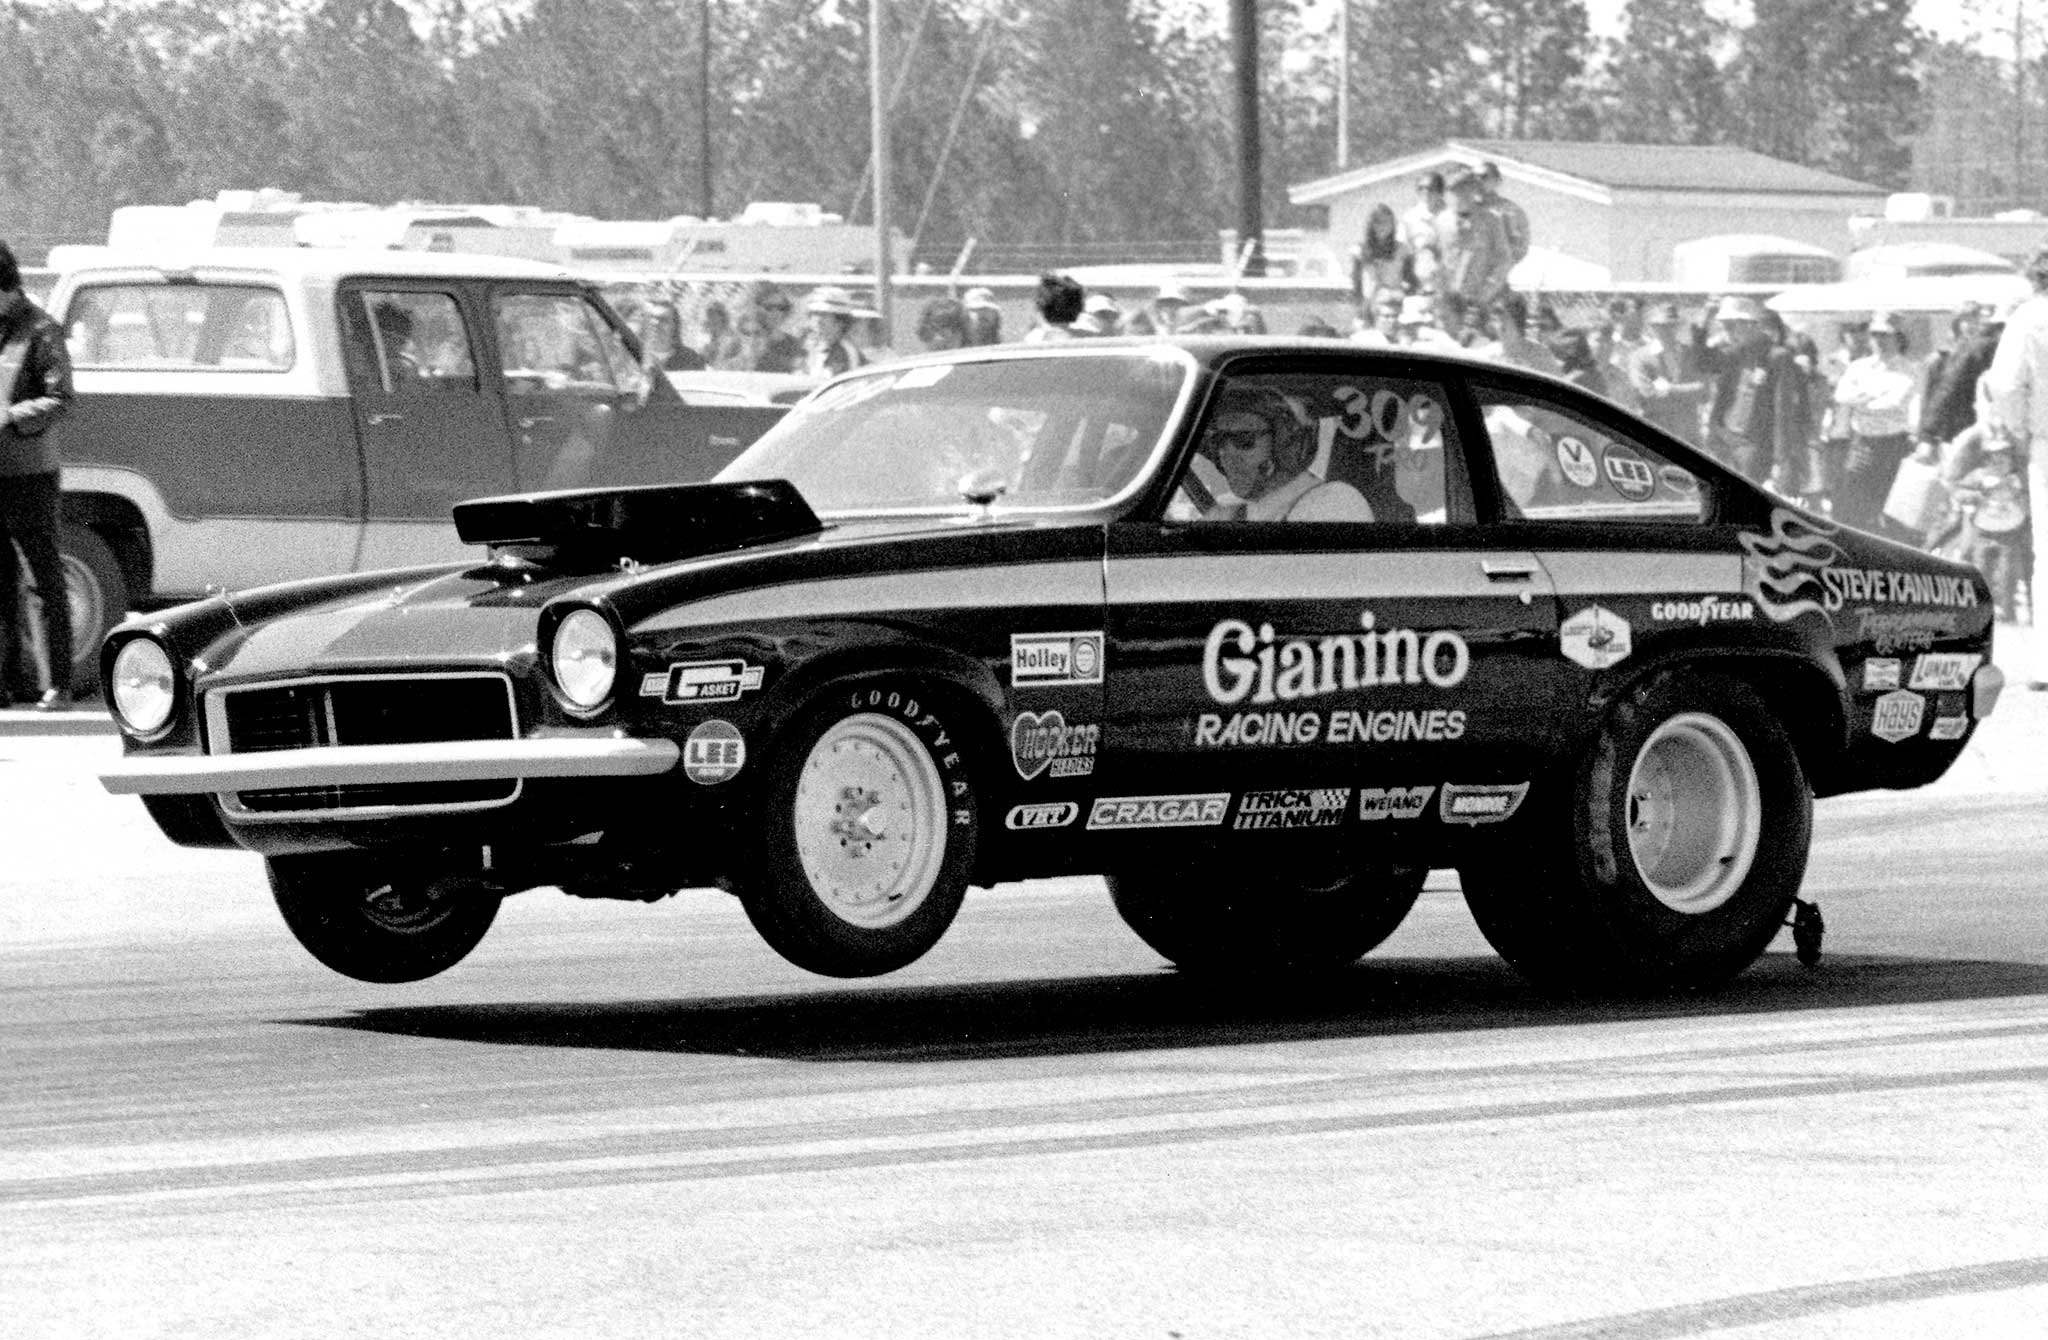 Sam Gianino, from Royal Oak, Michigan, won Street Eliminator at the Nationals in 1965 with a 1957 Corvette. In 1972 he applied Pro Stock technology to this B/Gas small-block Vega, cranking out 8-second e.t.'s with a Doug Nash five-speed.